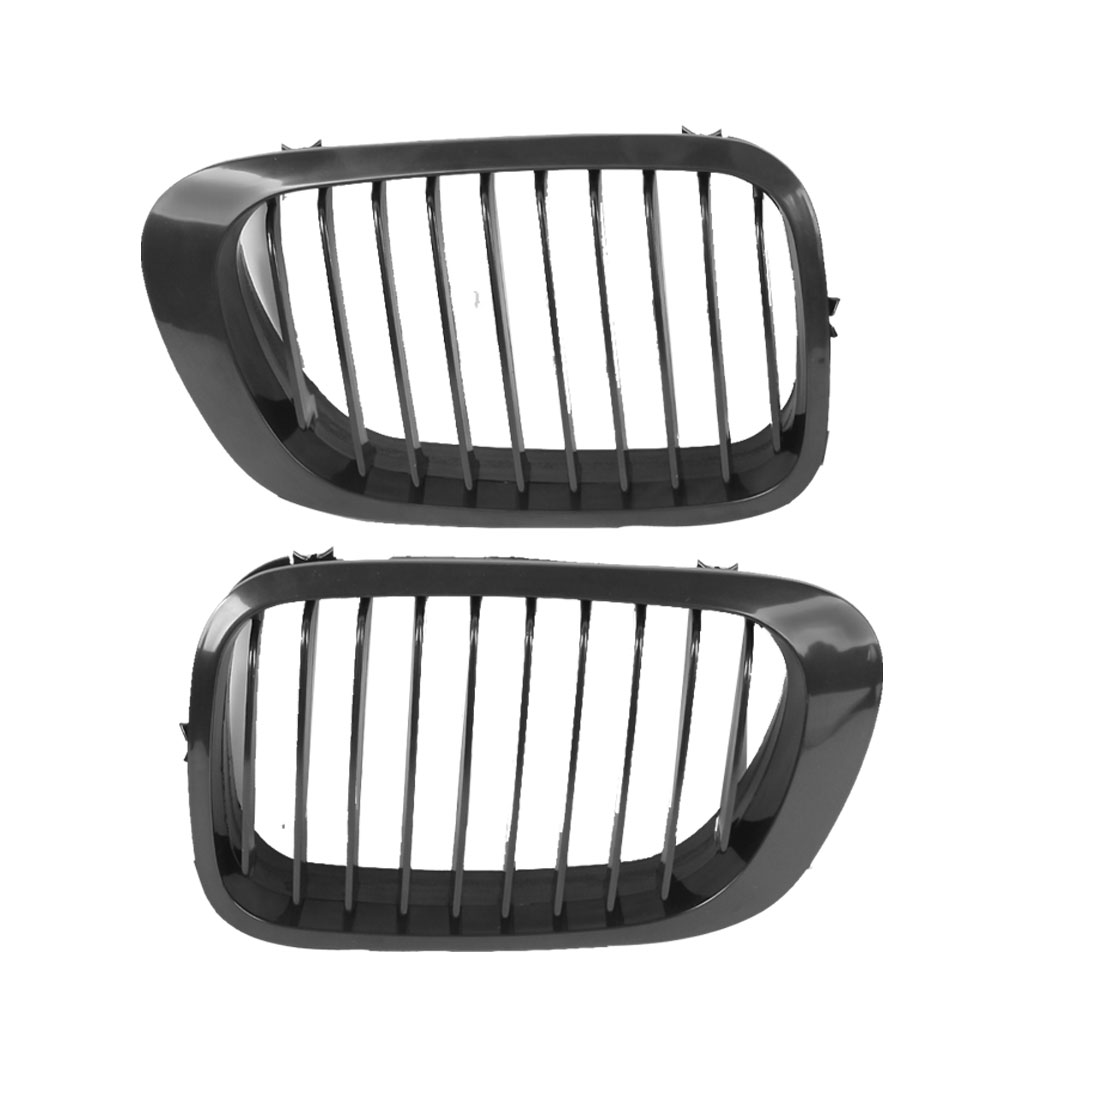 2 Pcs Front Bumper Kidney Grill Grille for 1998-2001 BMW E46